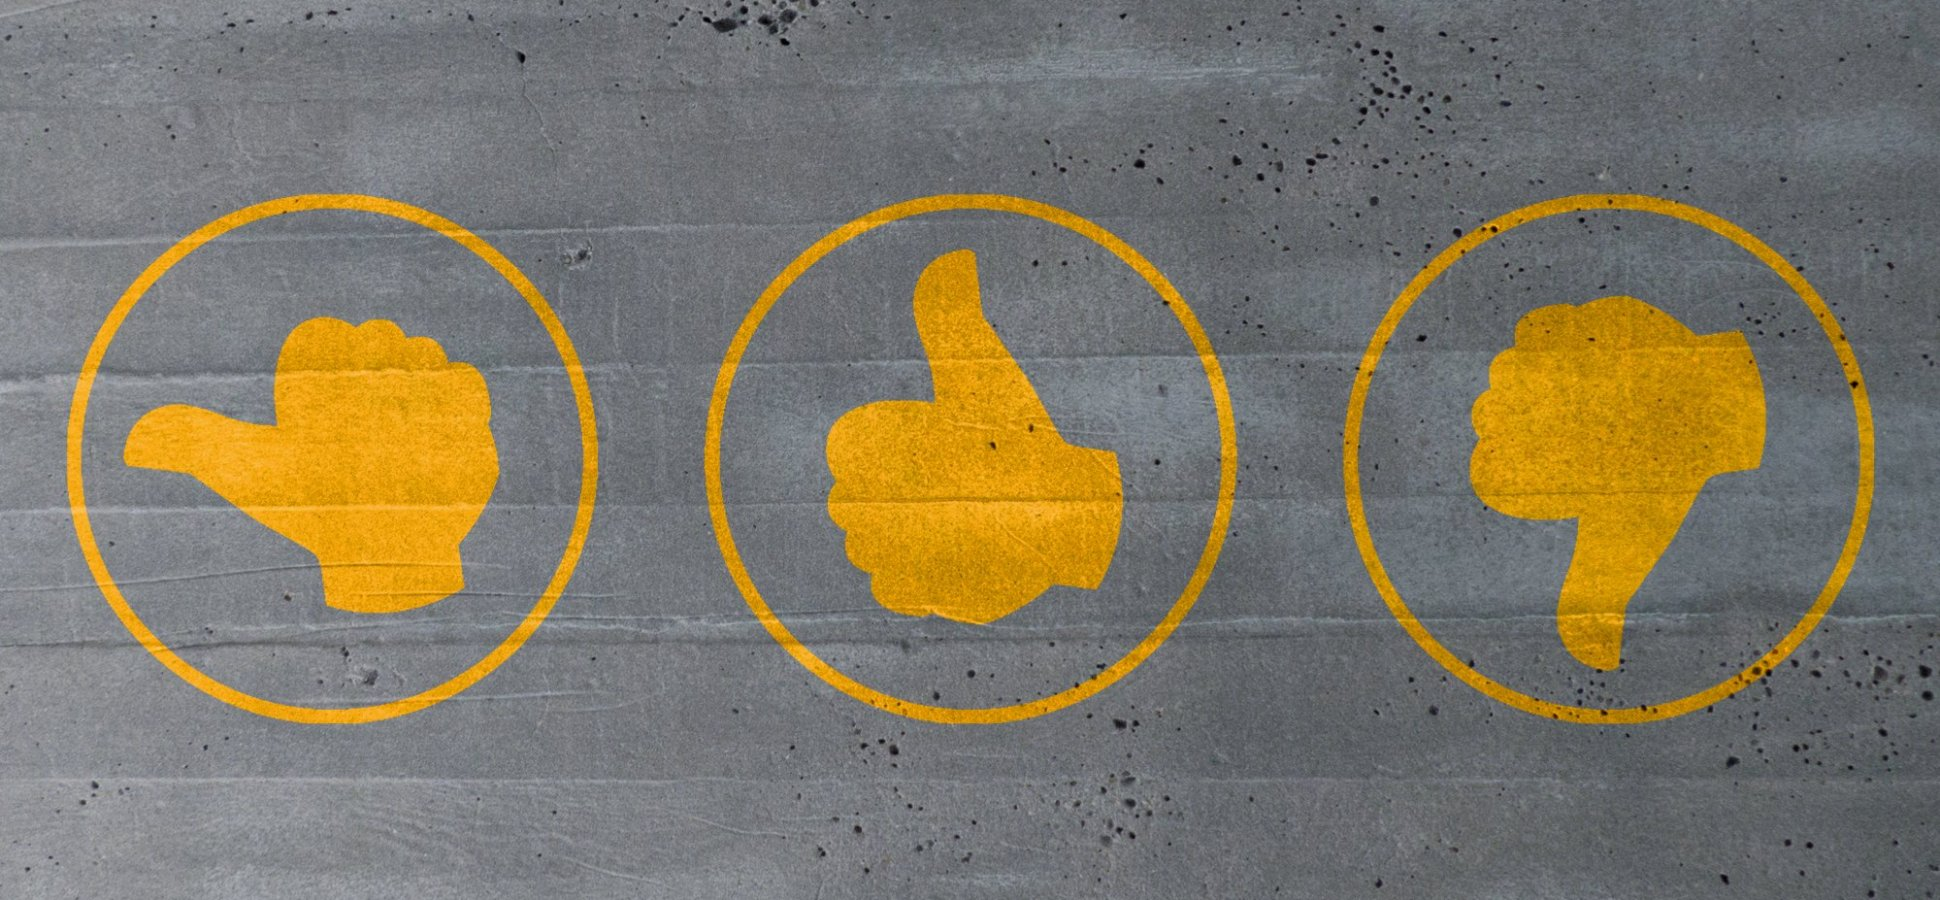 How to Get the Most Out of Your Customer Feedback